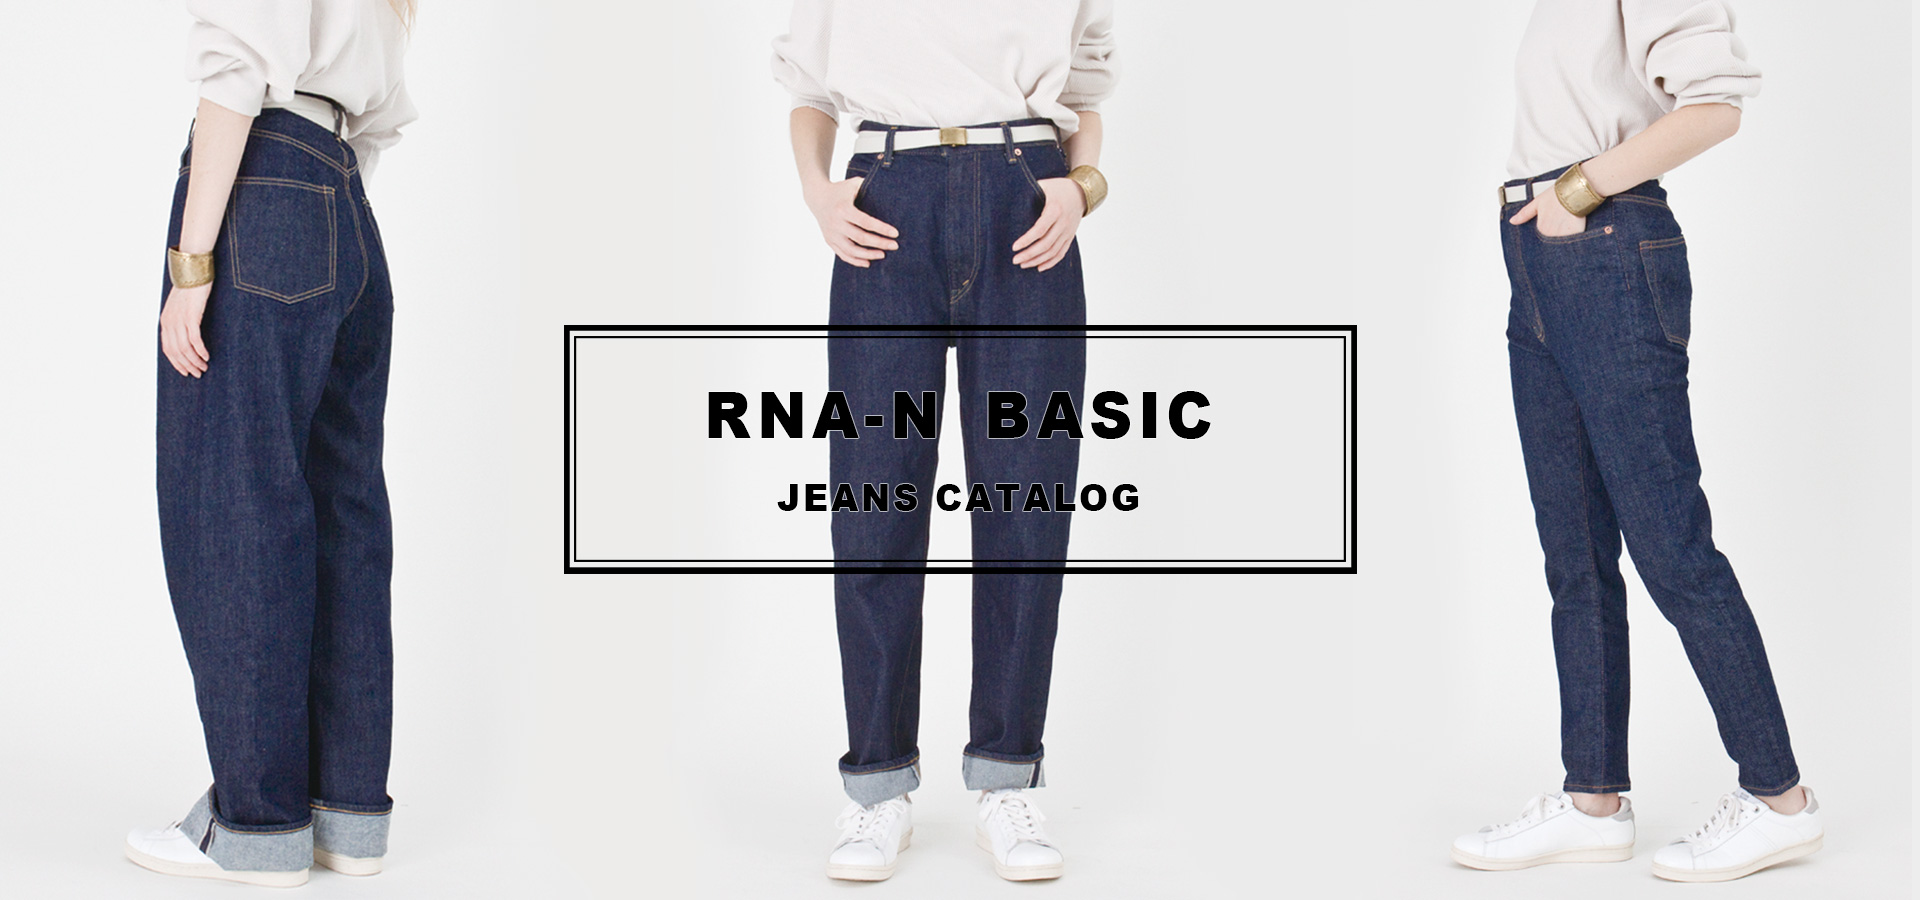 RNA-N BASIC DENIMS